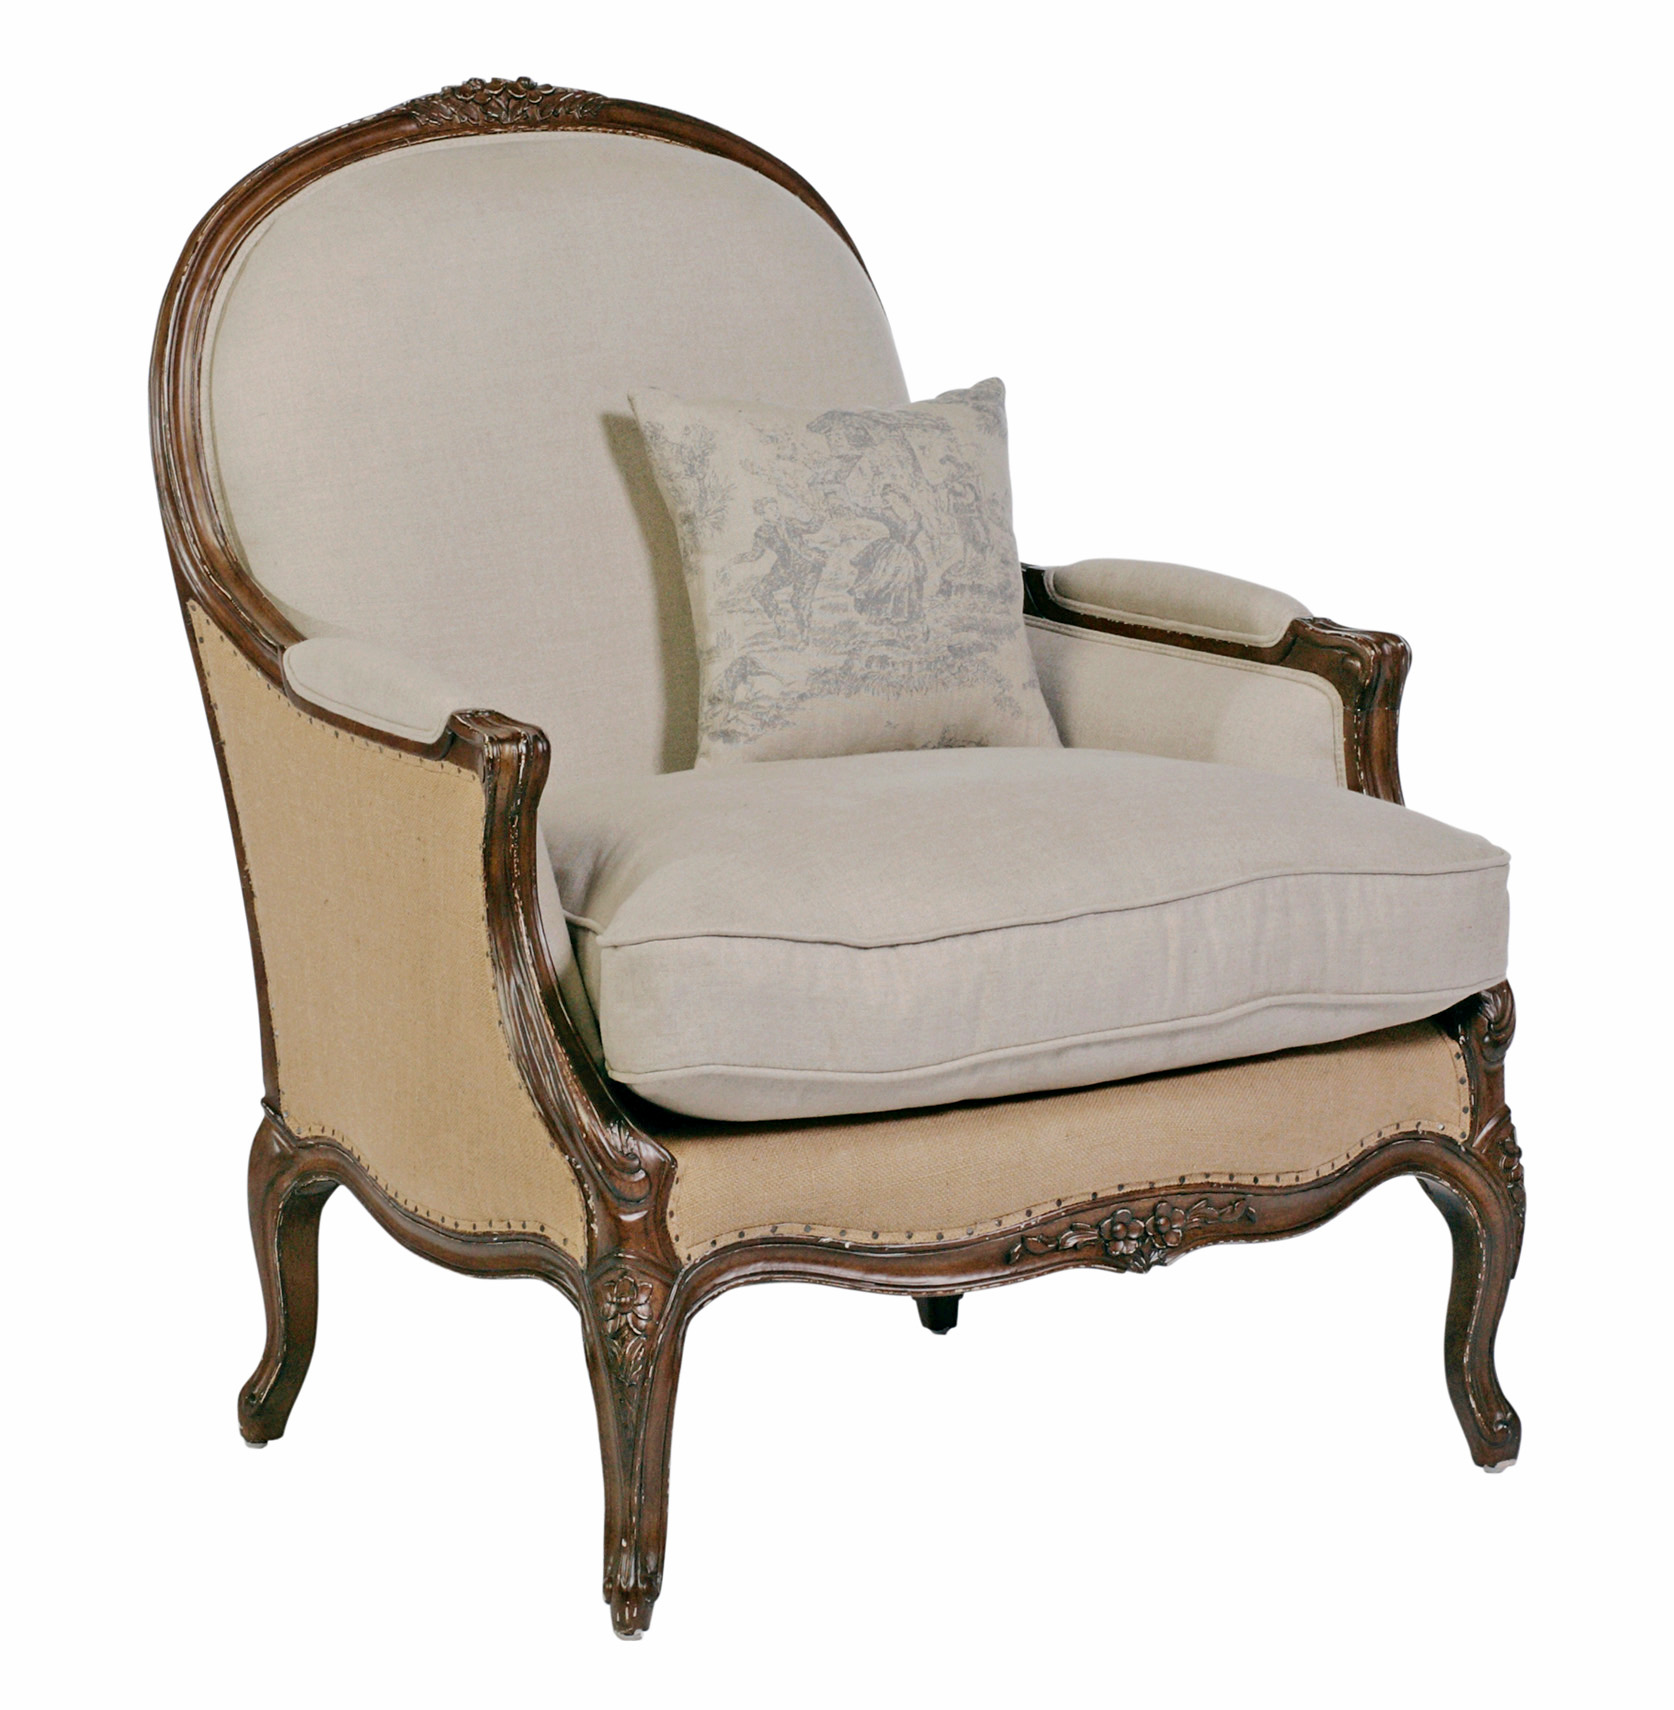 French Chairs Chloe Oversized French Country Burlap Linen Bergere Accent